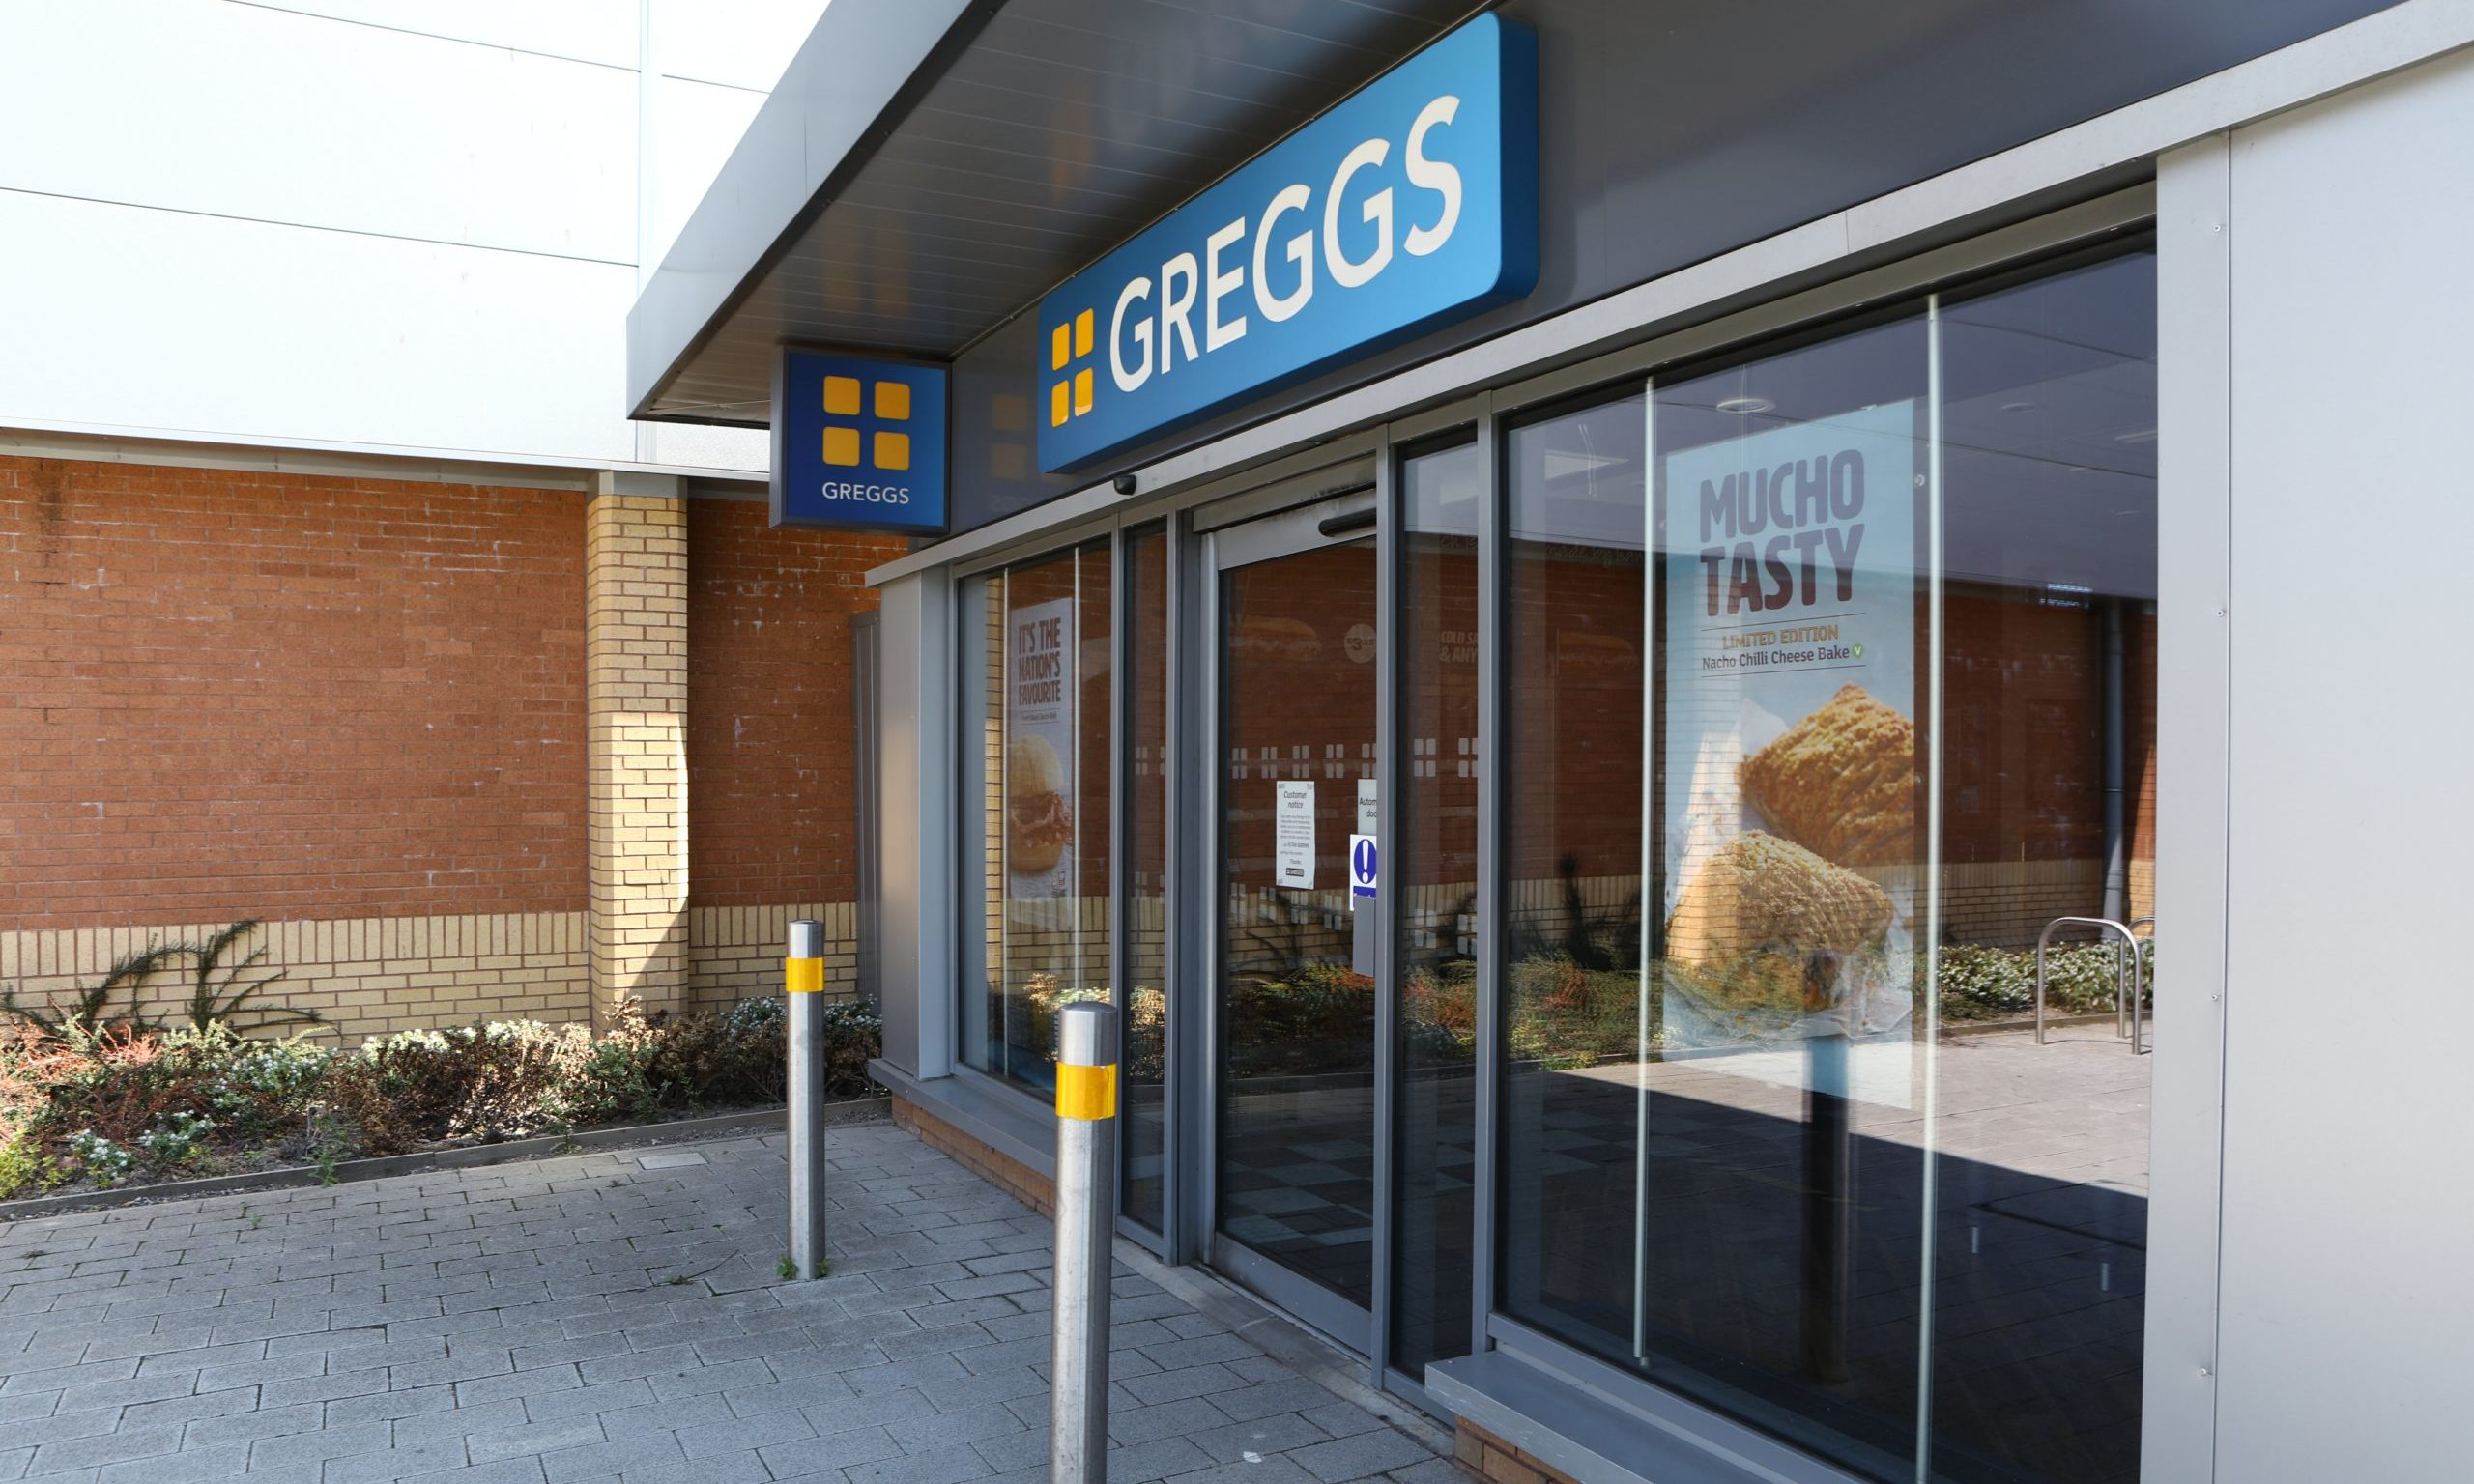 One Greggs branch in Perth will not be reopening.